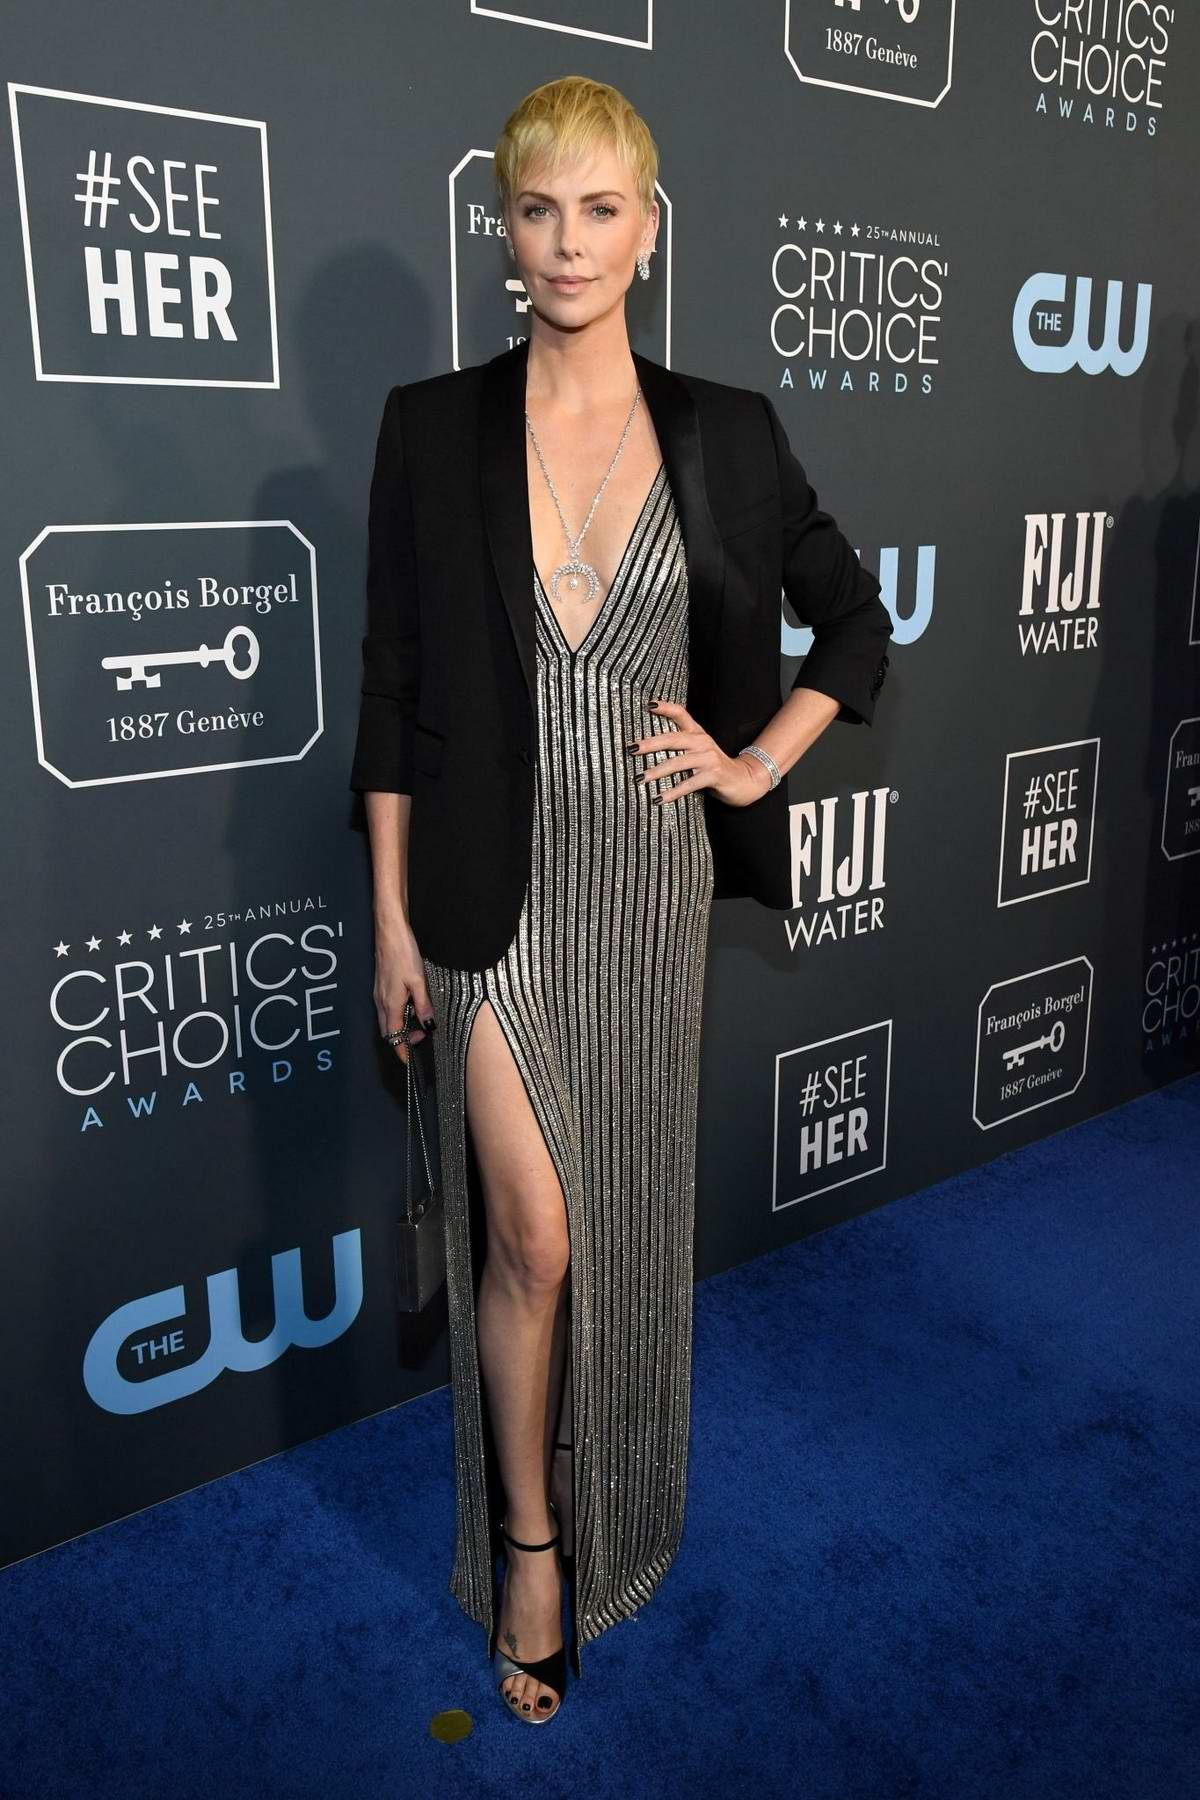 Charlize Theron attends the 25th Annual Critics' Choice Awards at Barker Hangar in Santa Monica, California